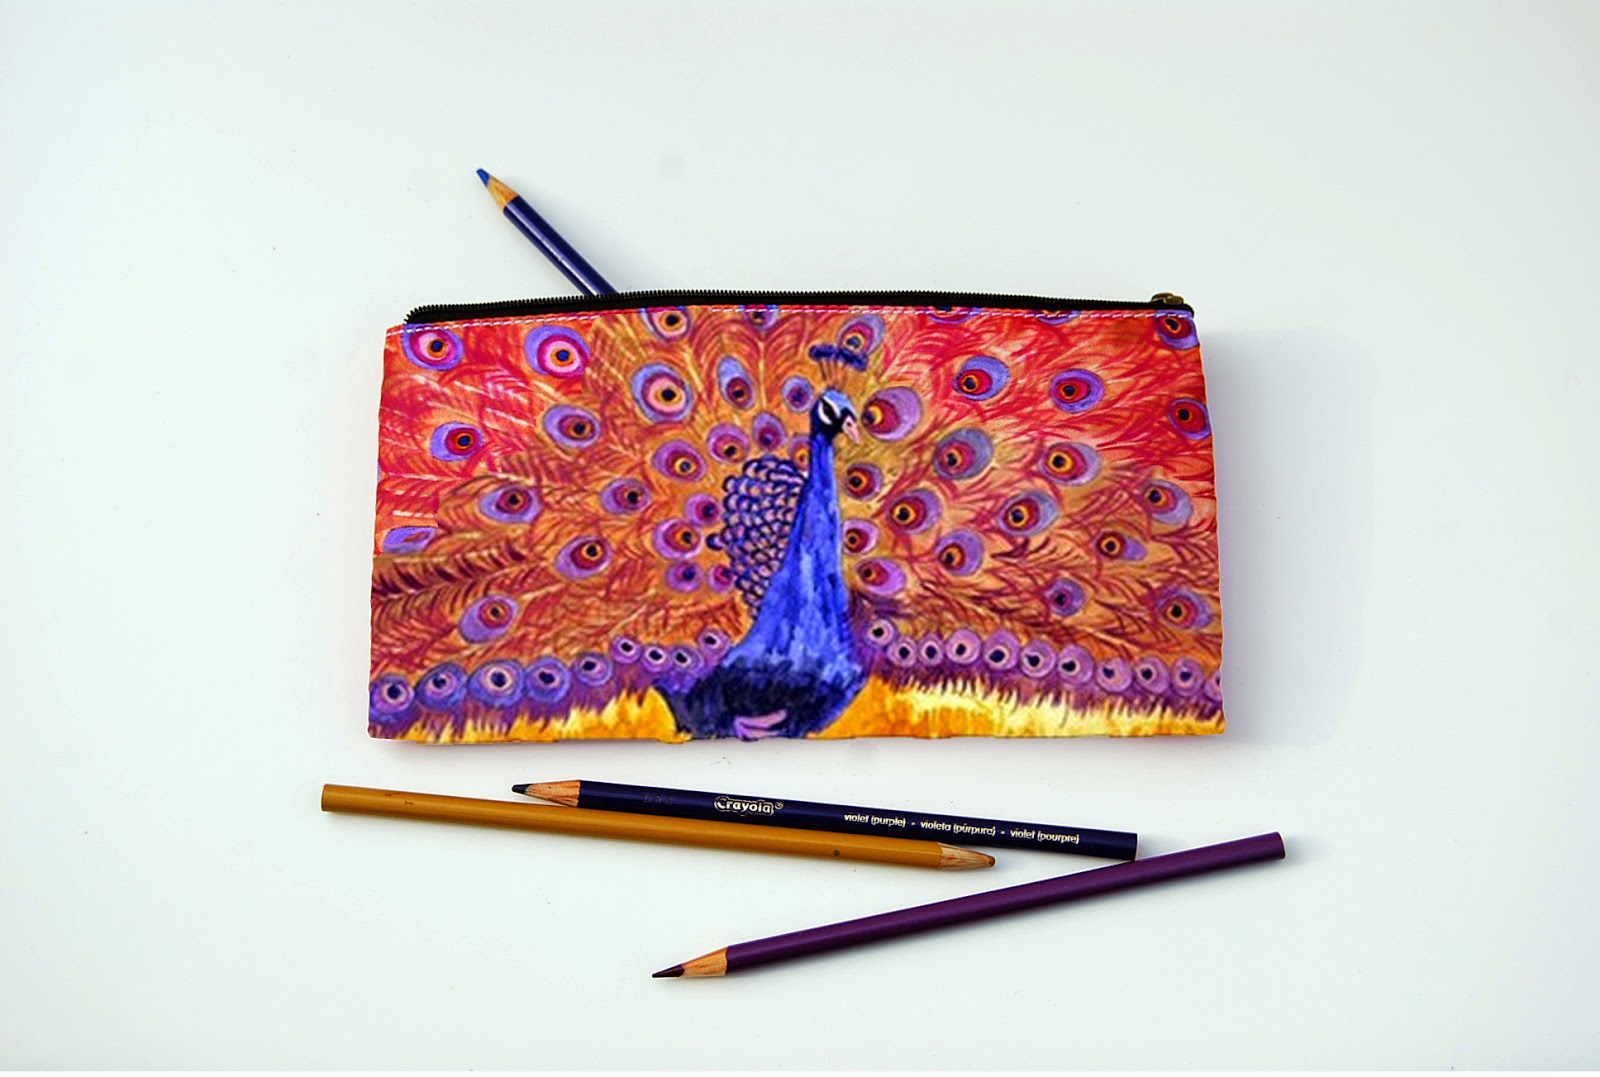 cute pencil cases | cool pencil cases discover more https://www.etsy.com/shop/SchulmanArts/search?search_query=pencil+cases&order=date_desc&view_type=gallery&ref=shop_search